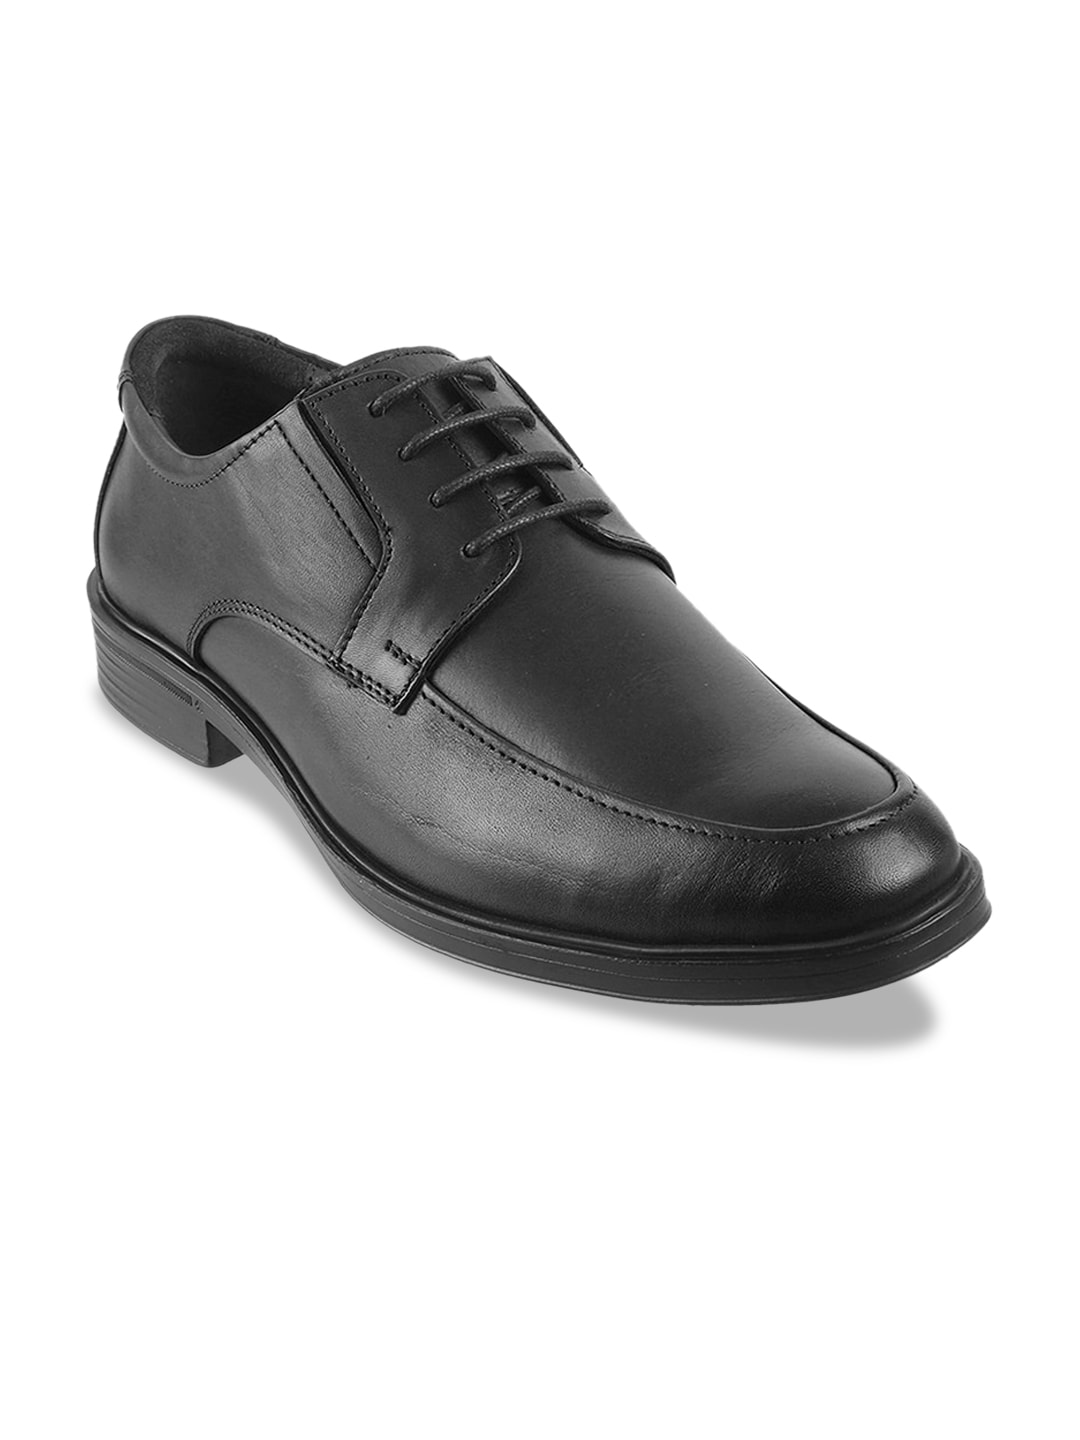 Metro Men Black Soild Leather Formal Derbys